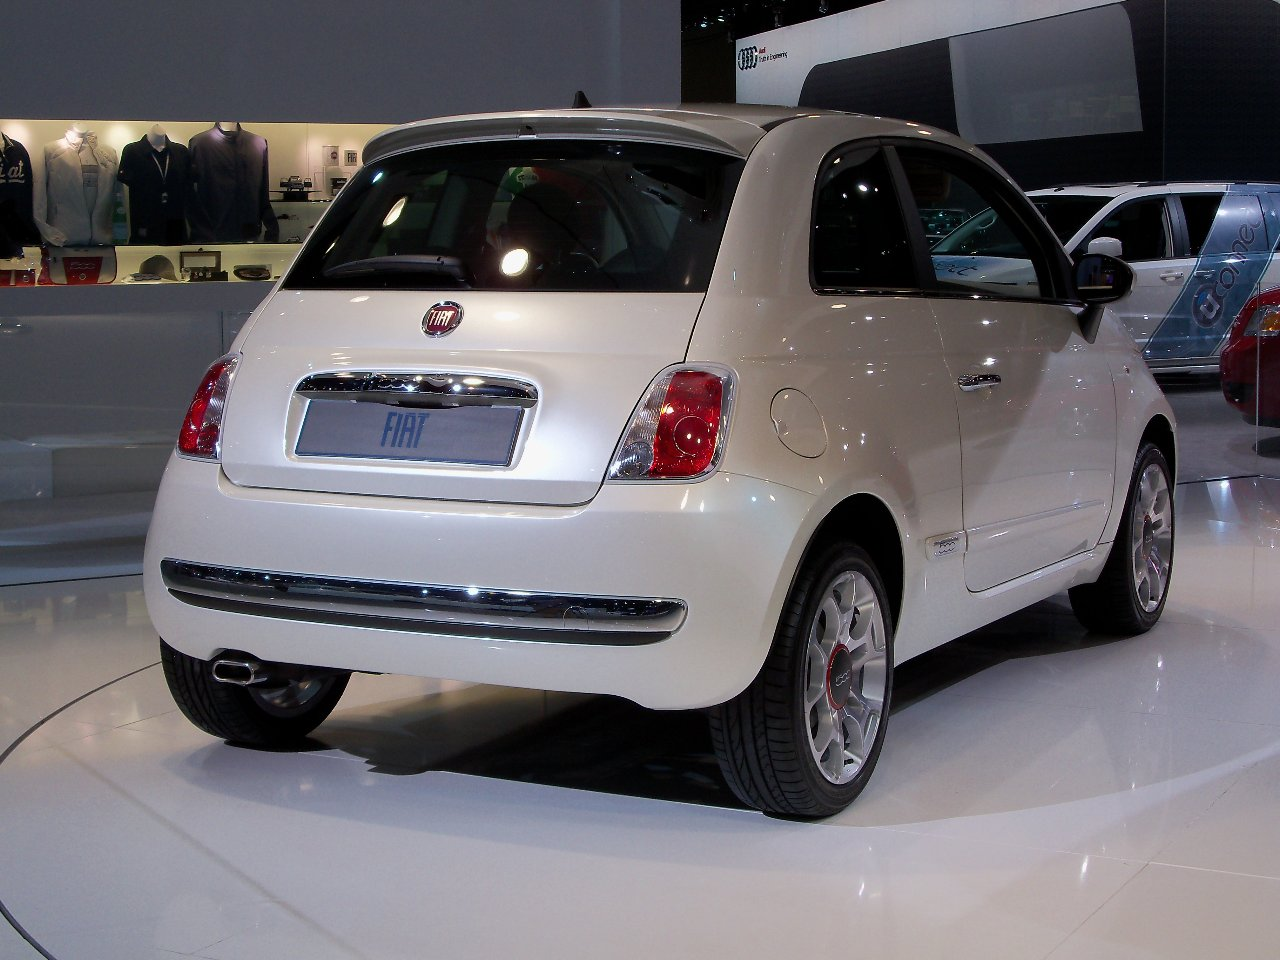 fiat at the 2010 new york international auto show fiat 500 usa. Black Bedroom Furniture Sets. Home Design Ideas